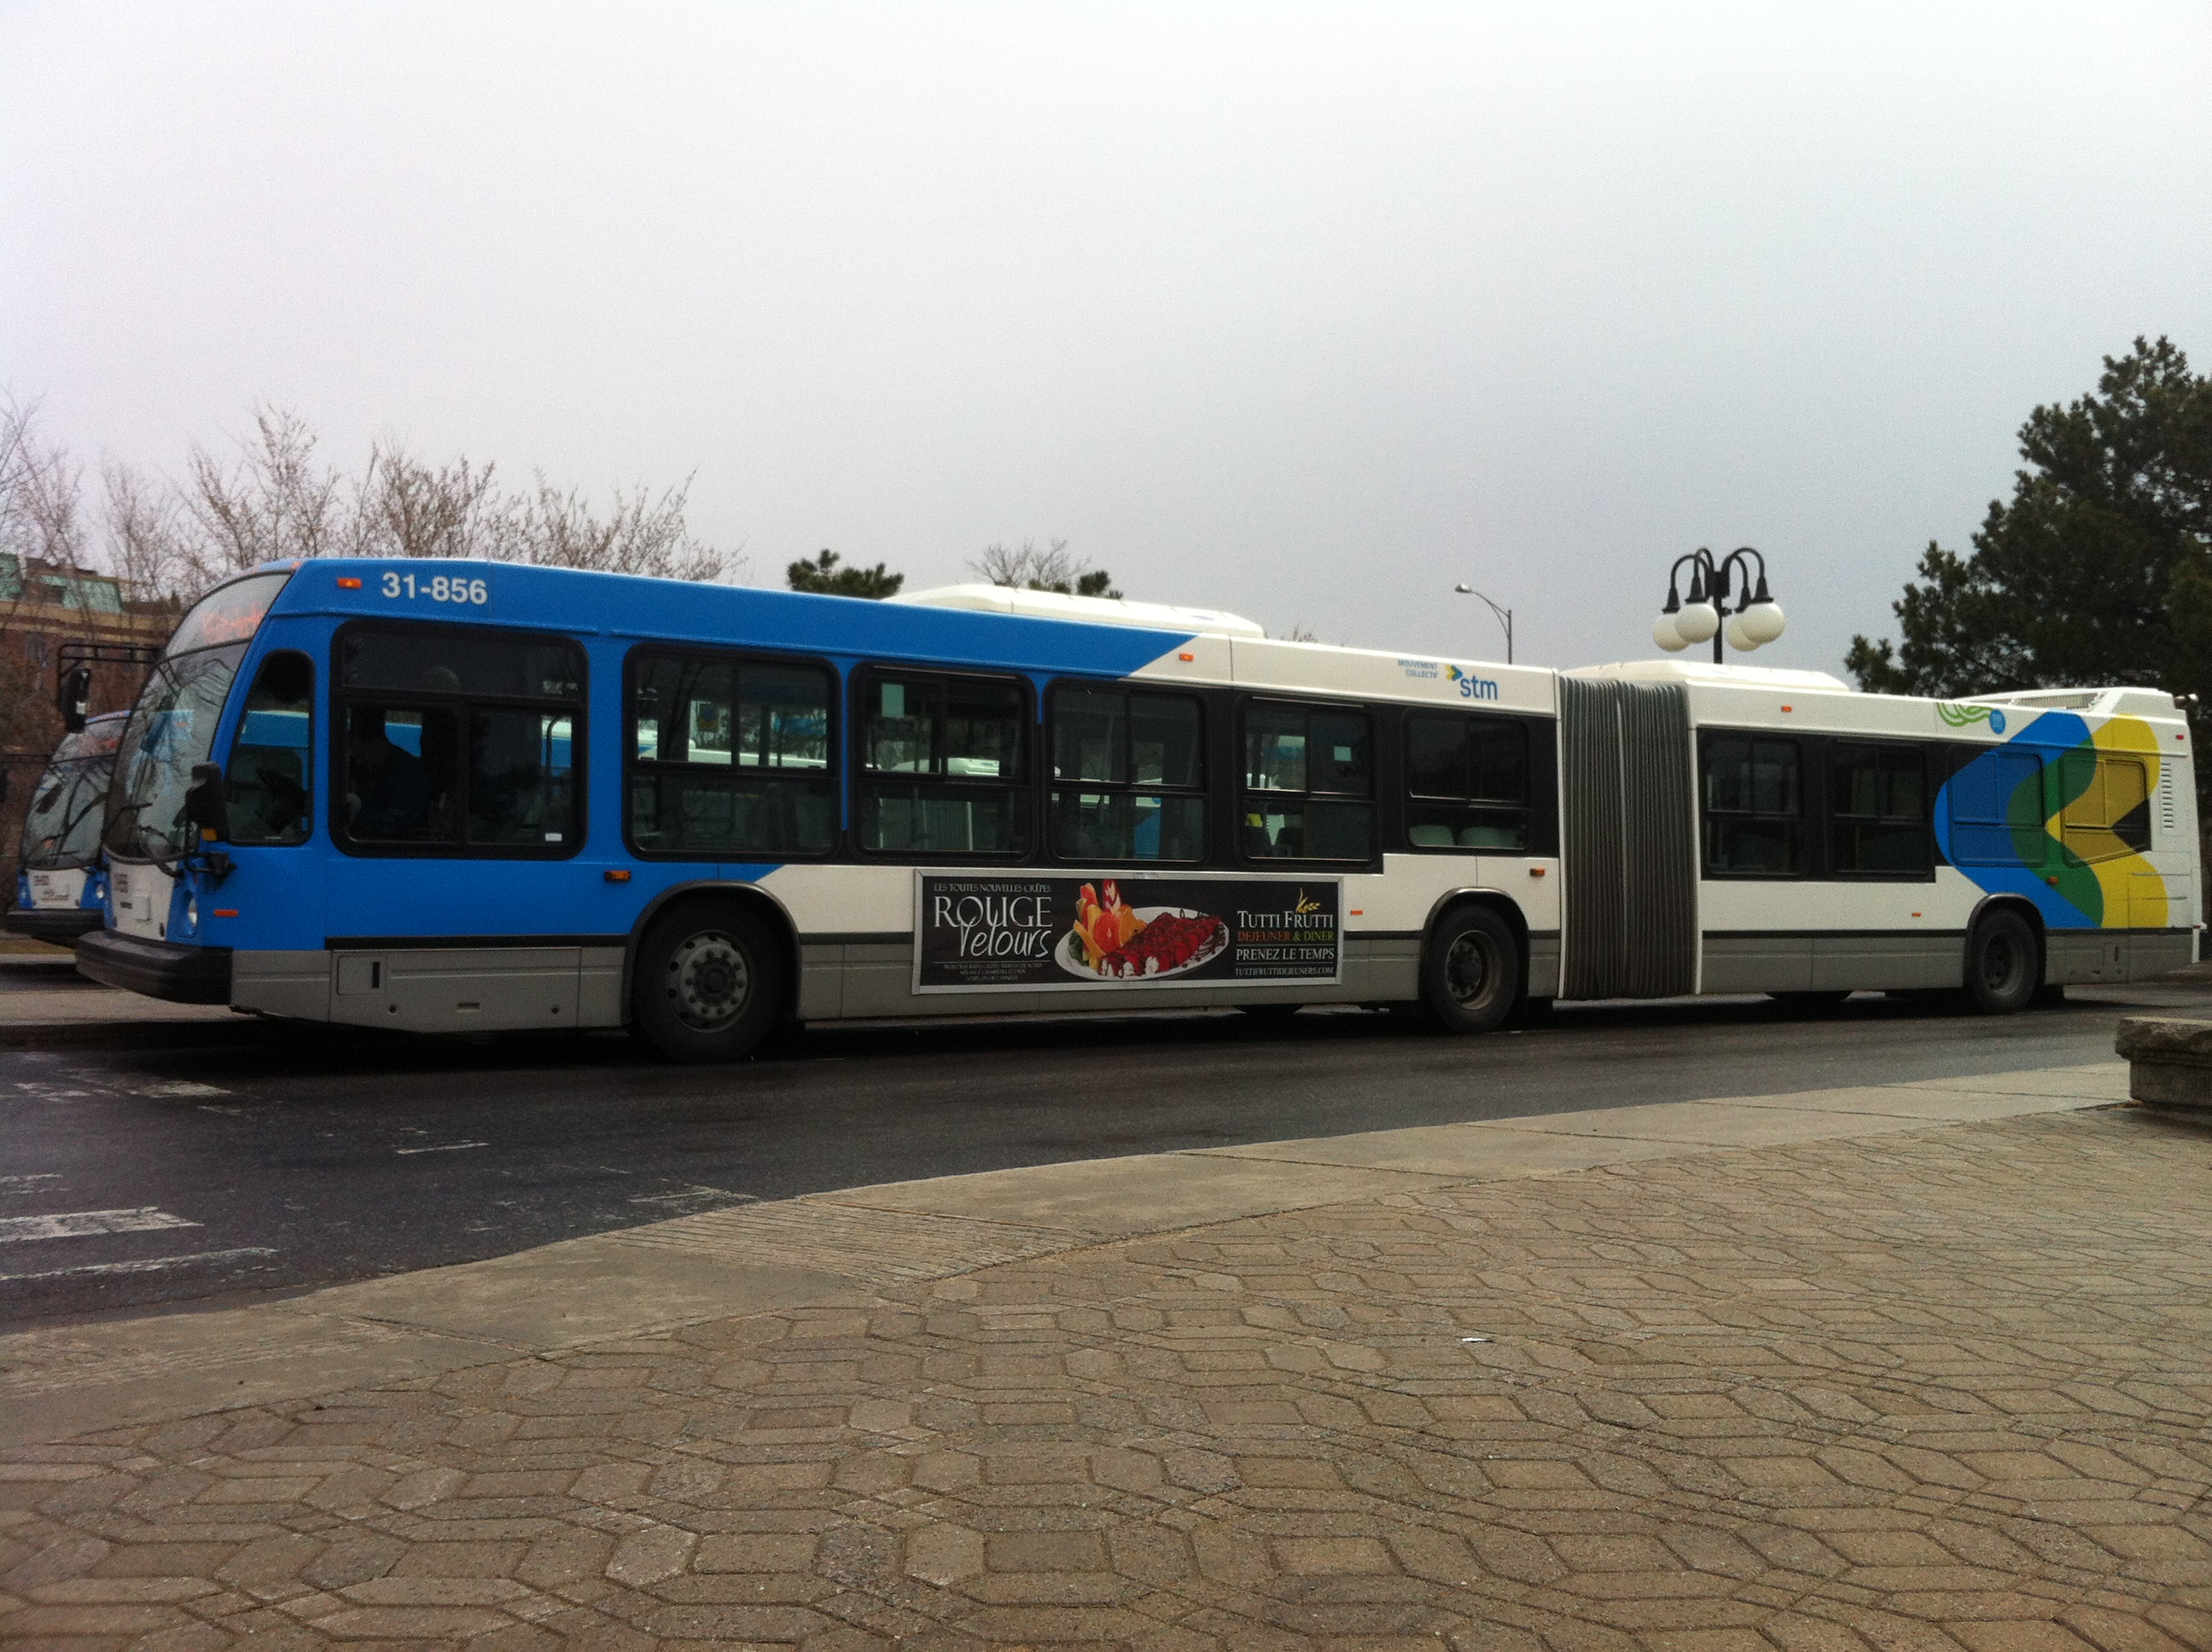 file:stm 435 bus - wikipedia